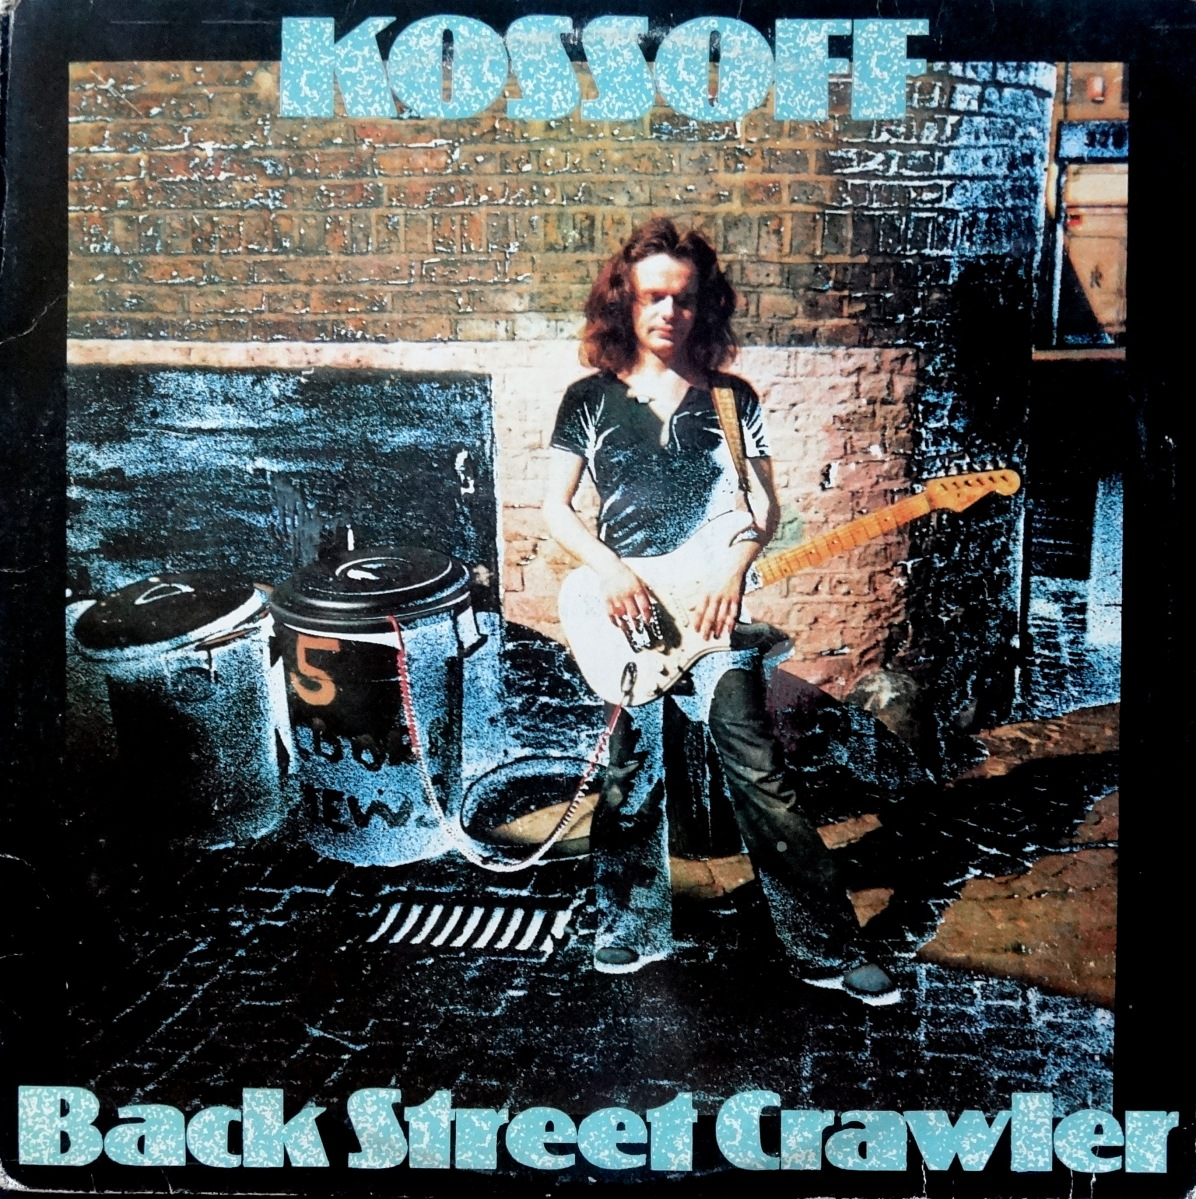 From The Stacks: Paul Kossoff, 'Back Street Crawler'